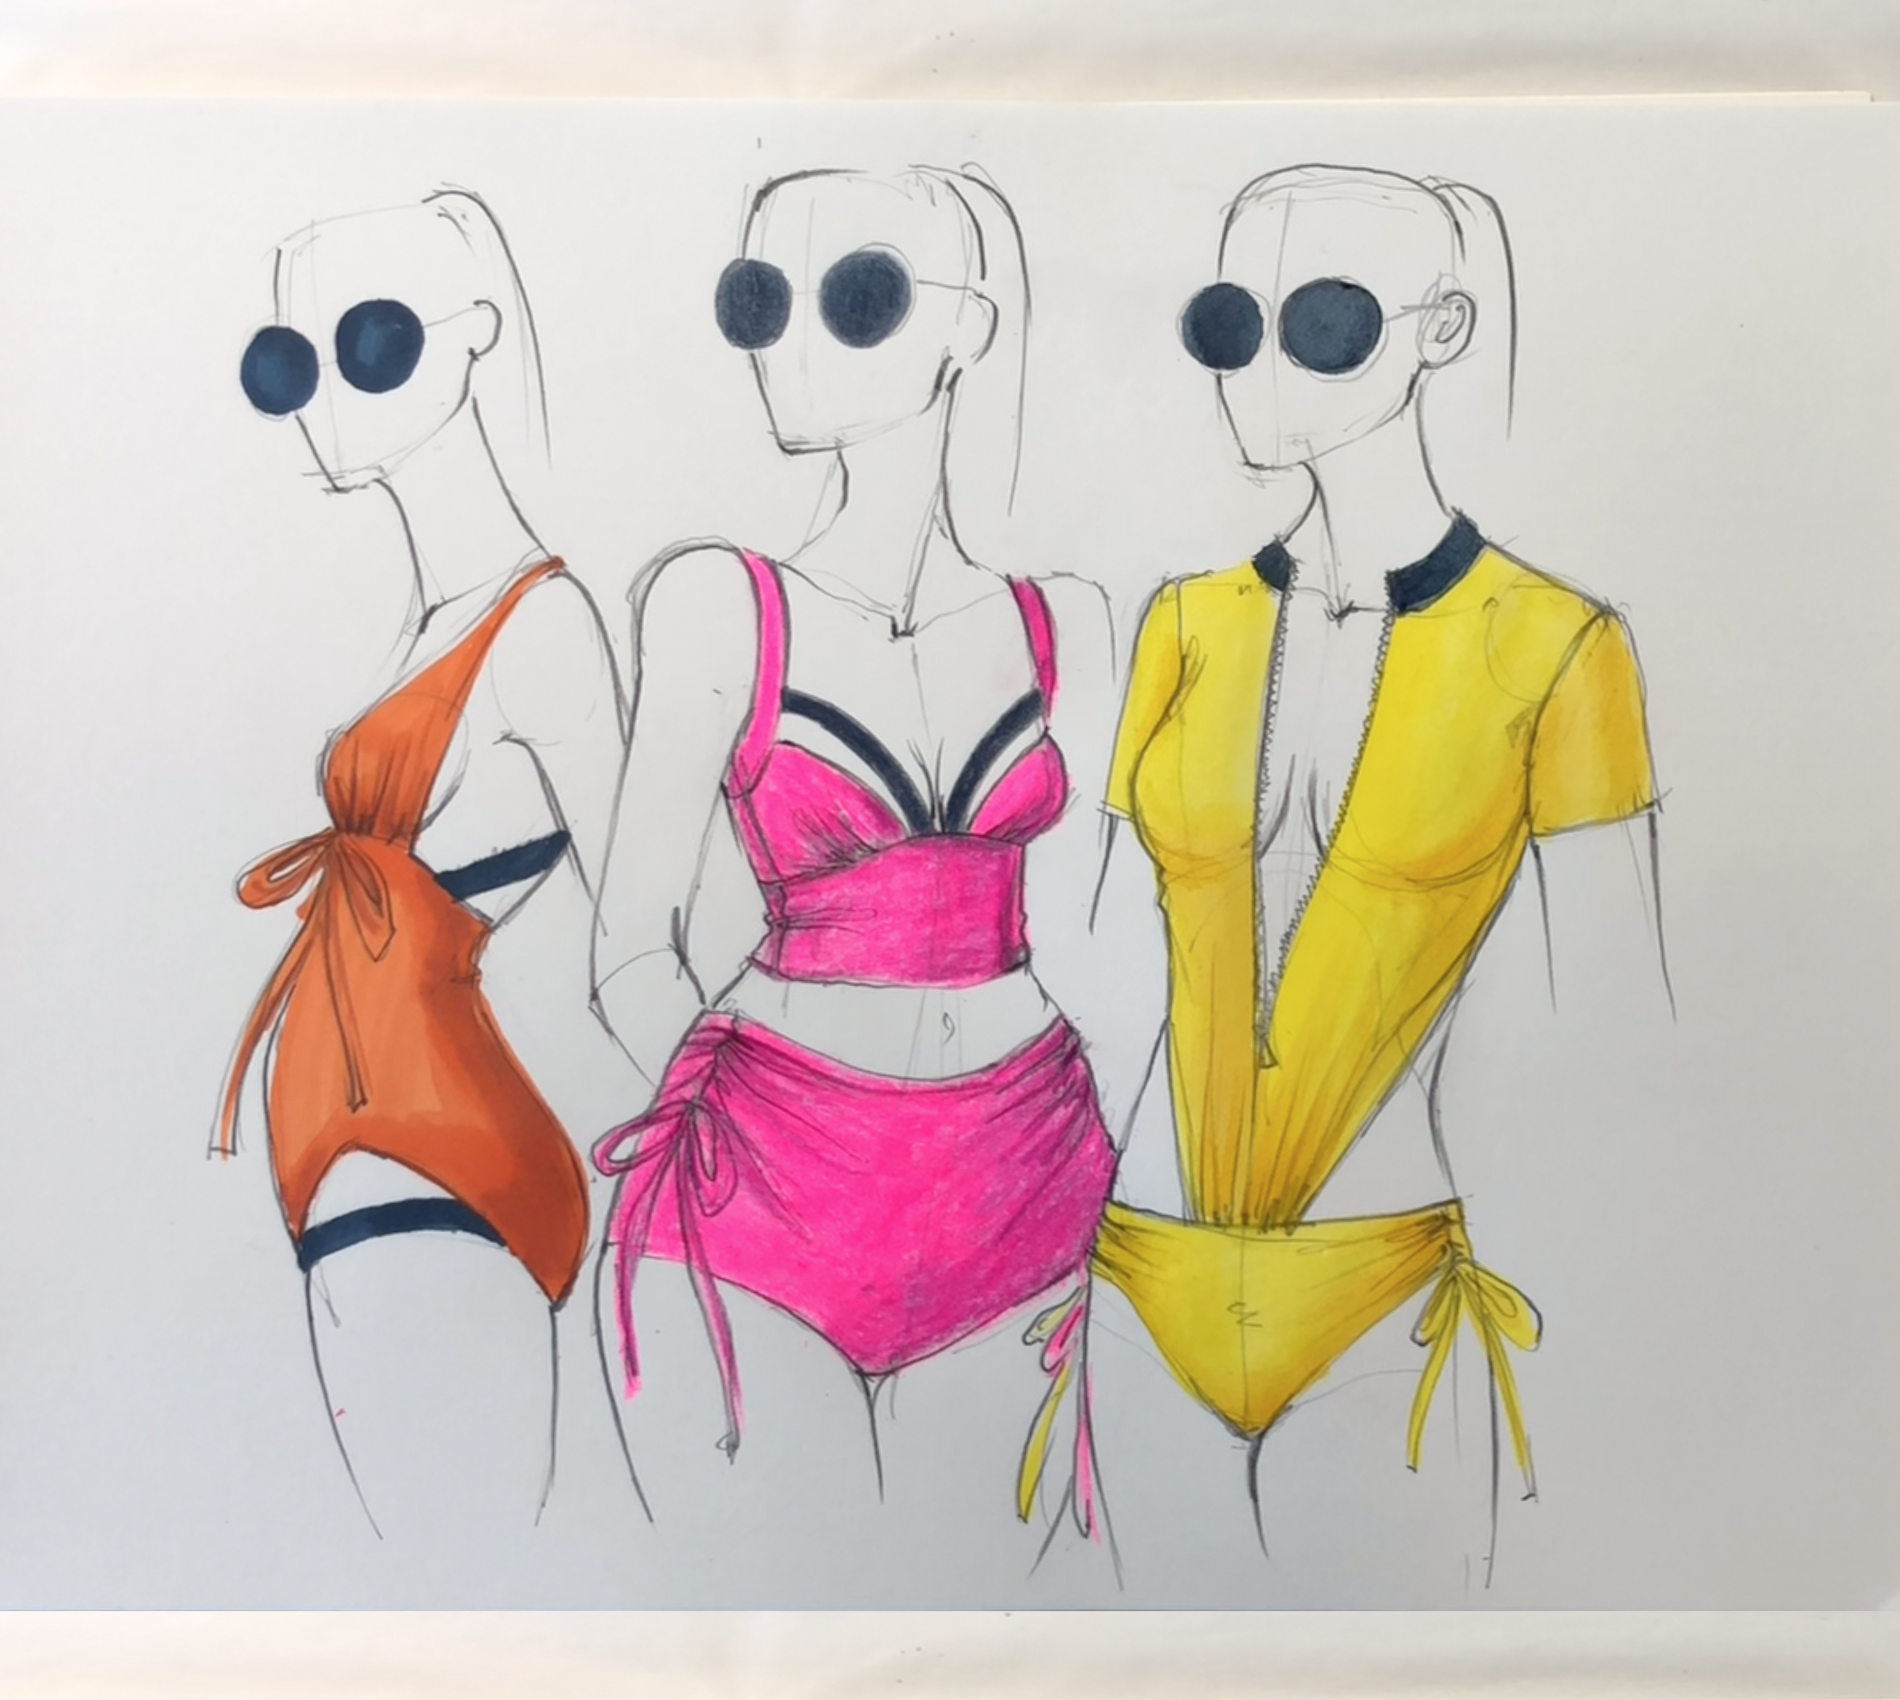 Everything You Wanted To Know About Preparing For Fashion Design School Bonus In This Illustration I Use M Fashion Design School Fashion Design Illustration